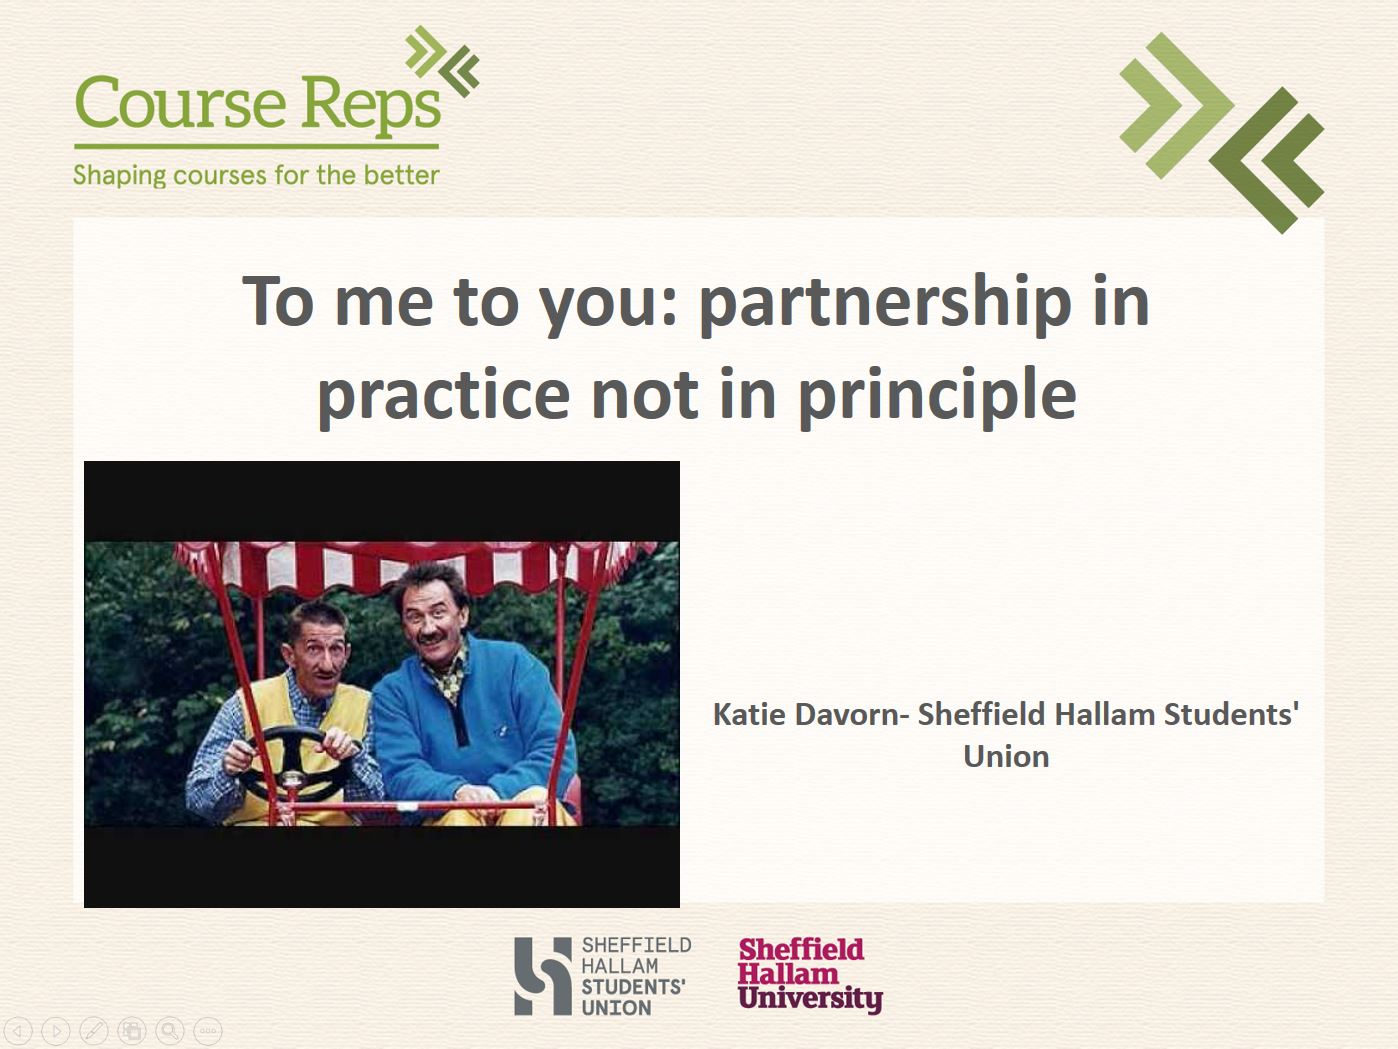 To me to you: partnership in practice not in principle